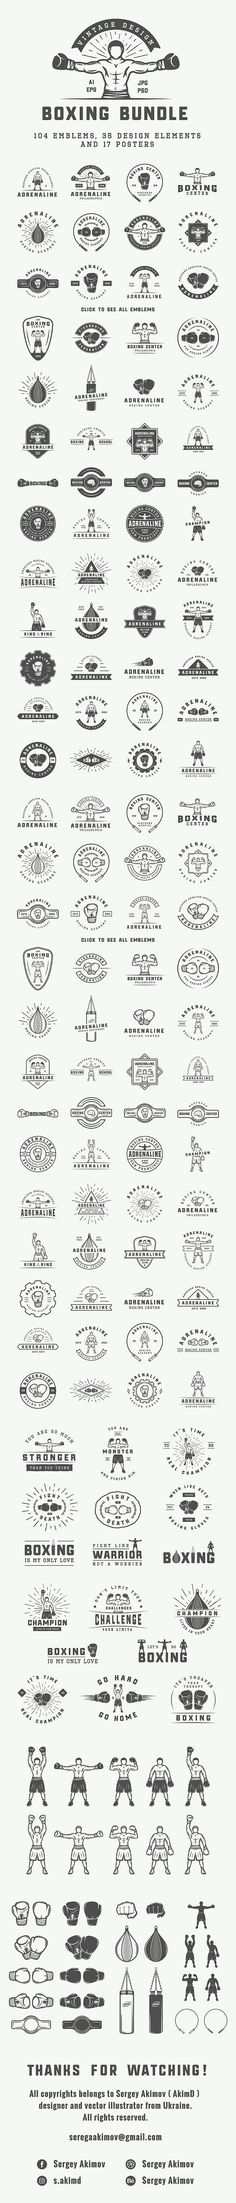 Vintage Boxing Bundle. Logo Templates